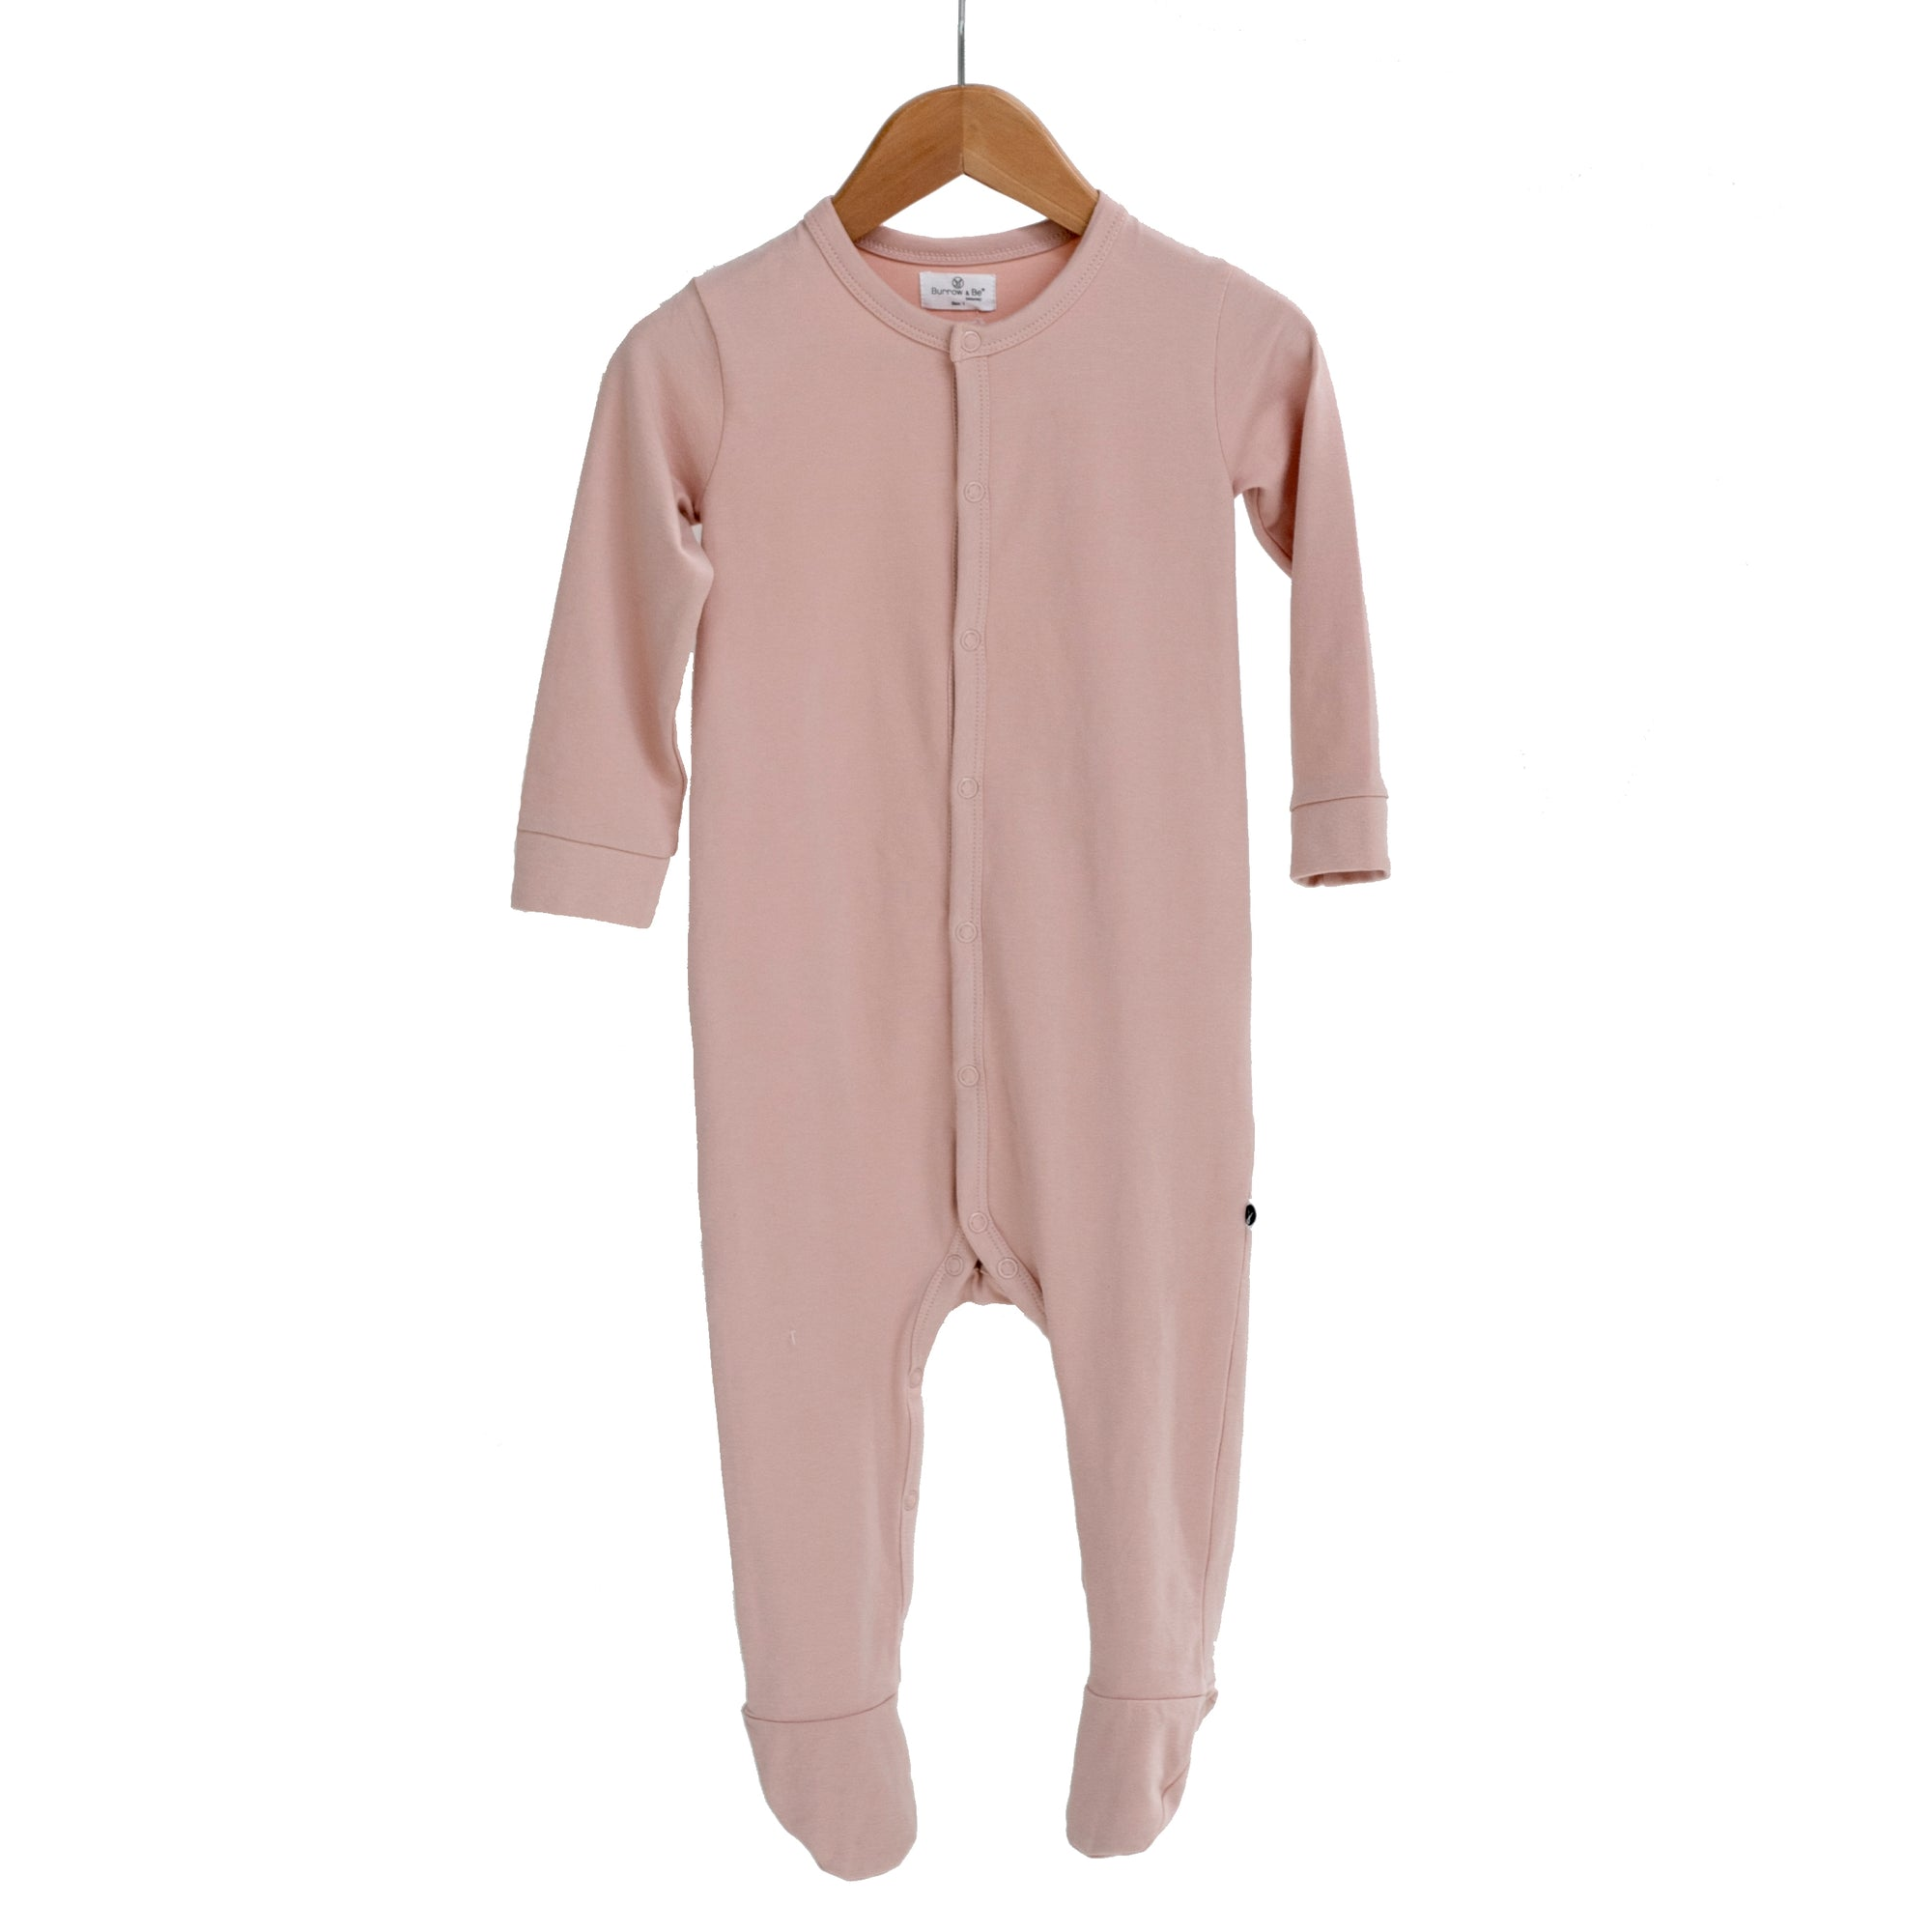 Burrow & Be Dusty Rose Sleep Suit